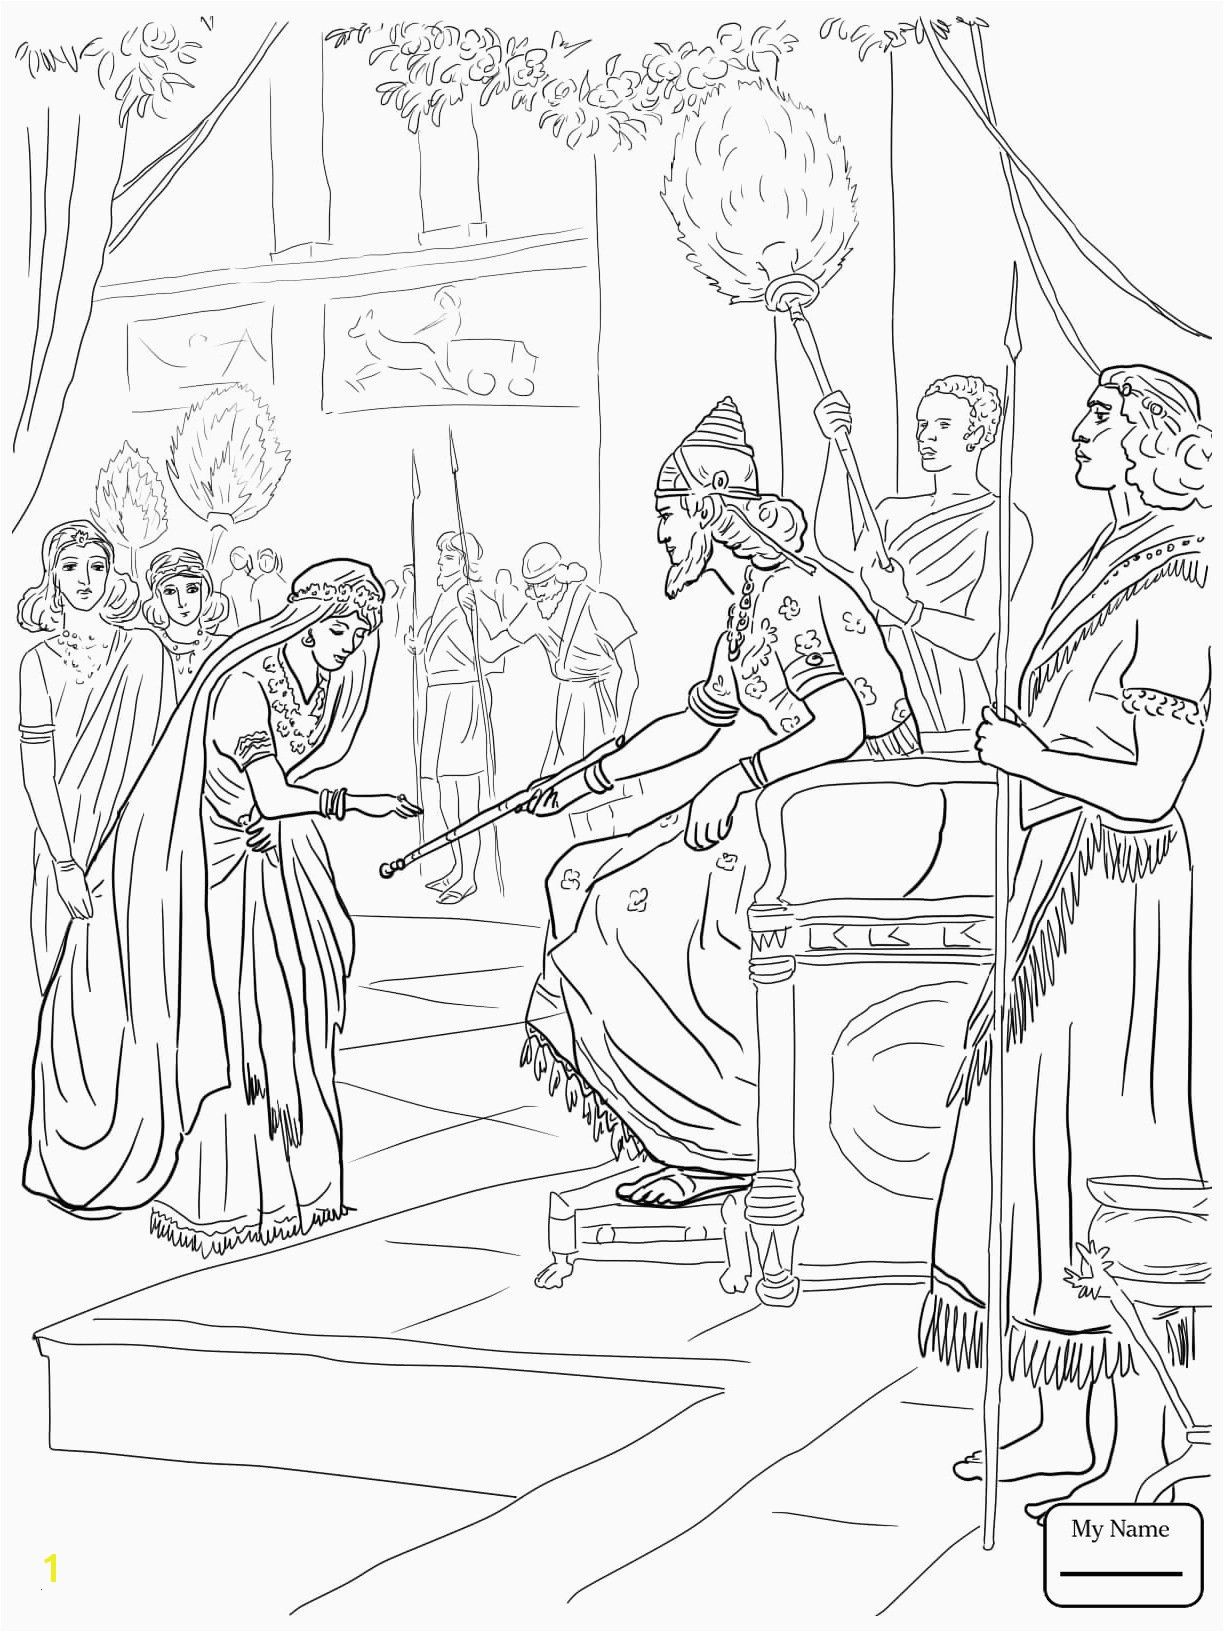 Mordecai and Haman Coloring Pages Queen Esther Coloring Pages Amazing Esther Coloring Pages Free